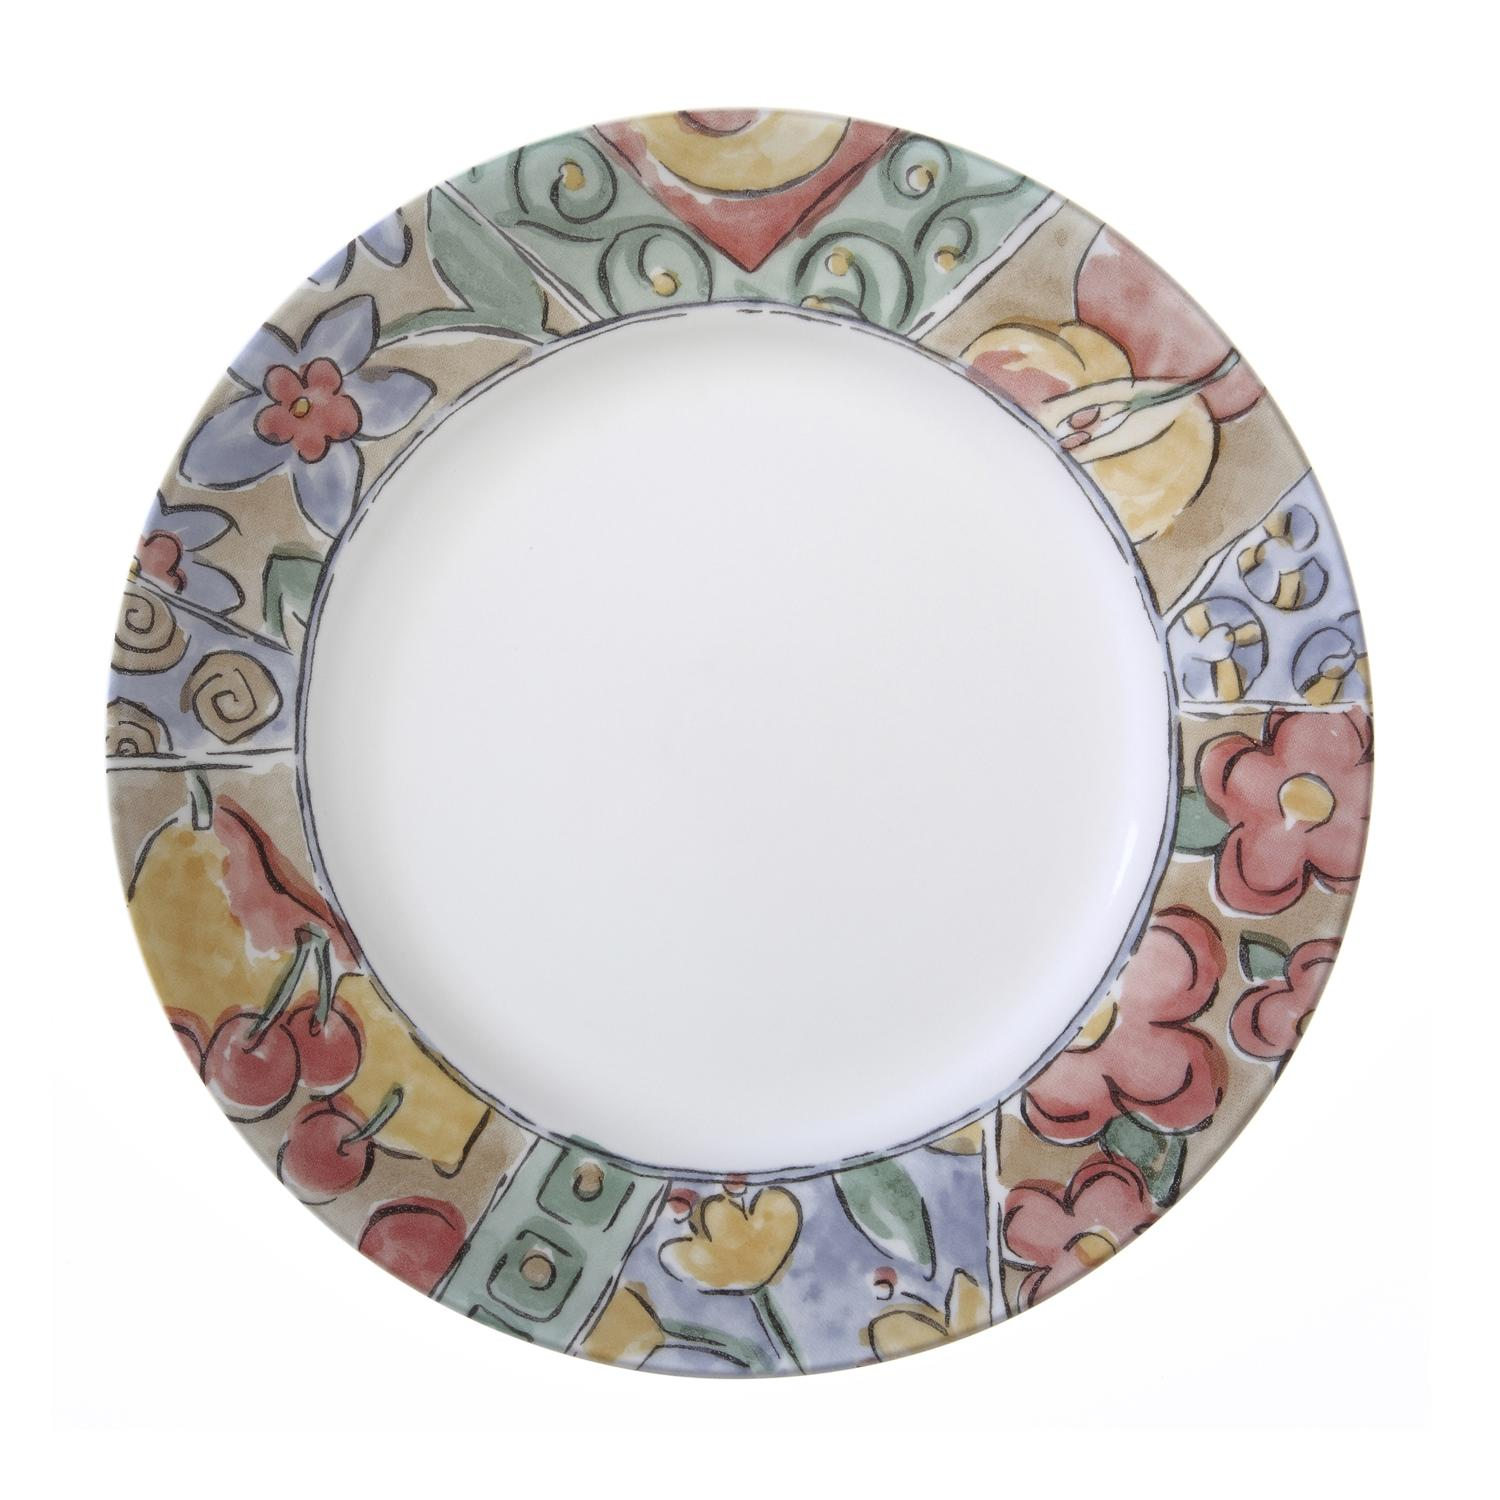 View larger  sc 1 st  Amazon.com & Amazon.com: Corelle Impressions 16-Piece Dinnerware Set Watercolors ...